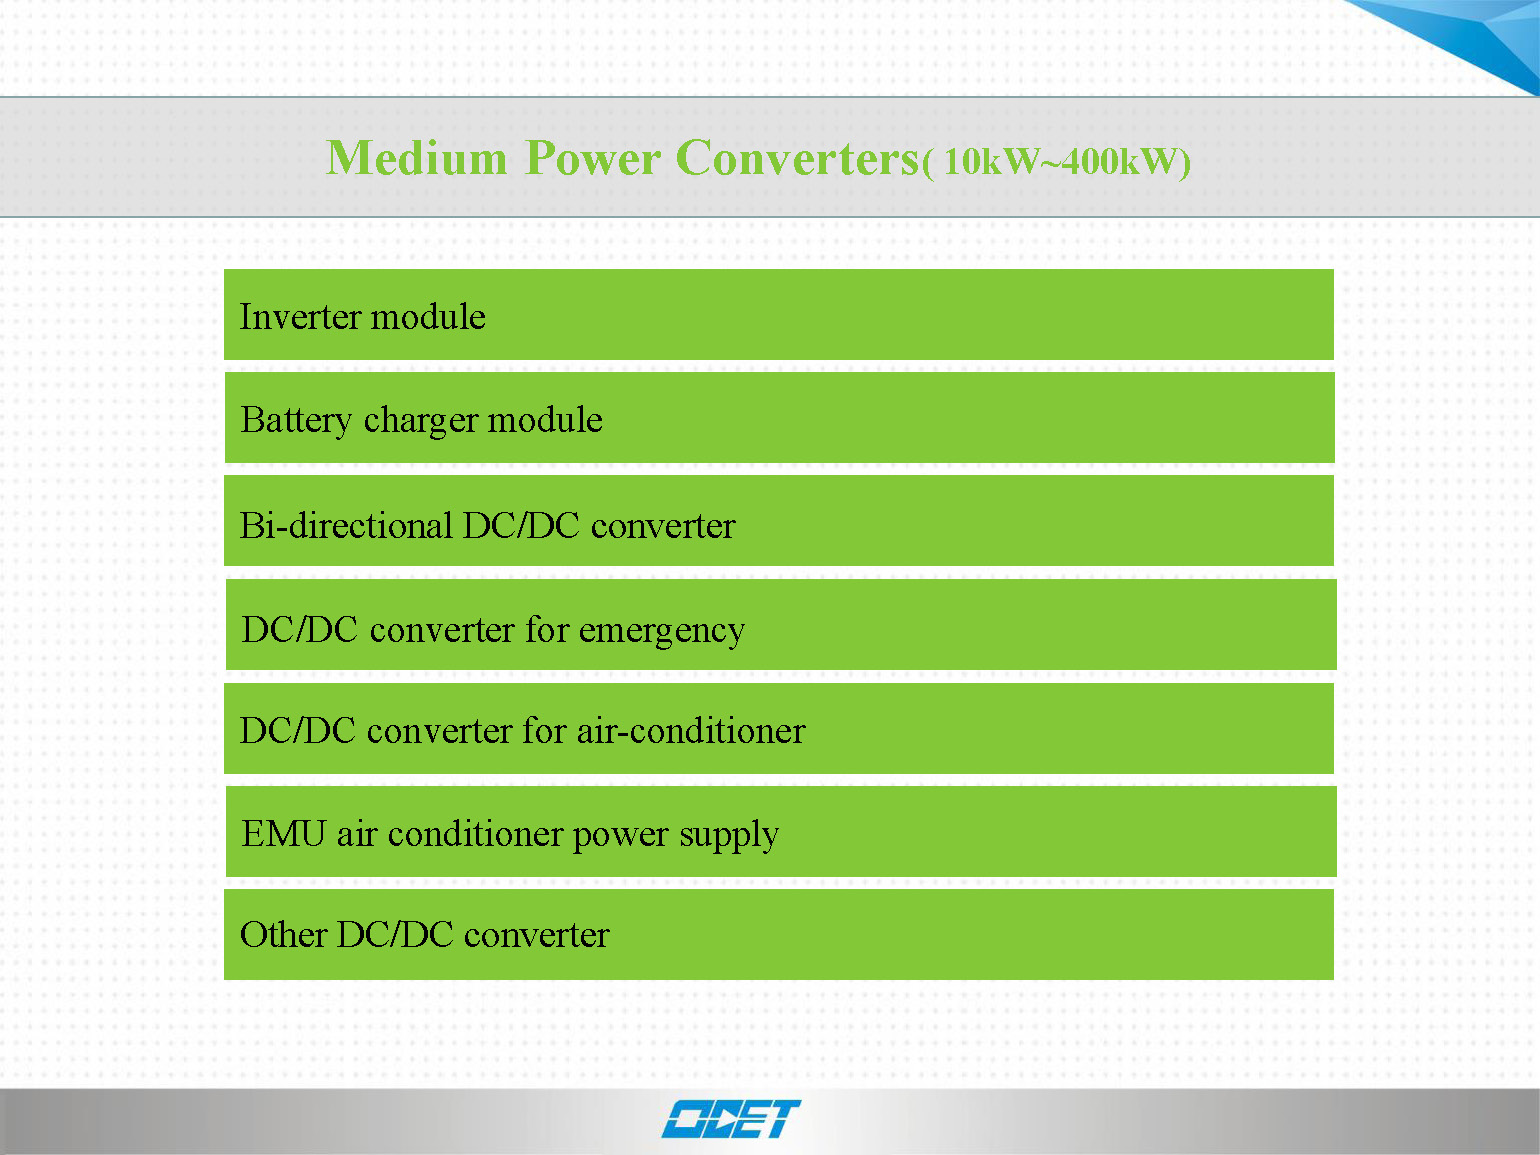 Medium Power converters